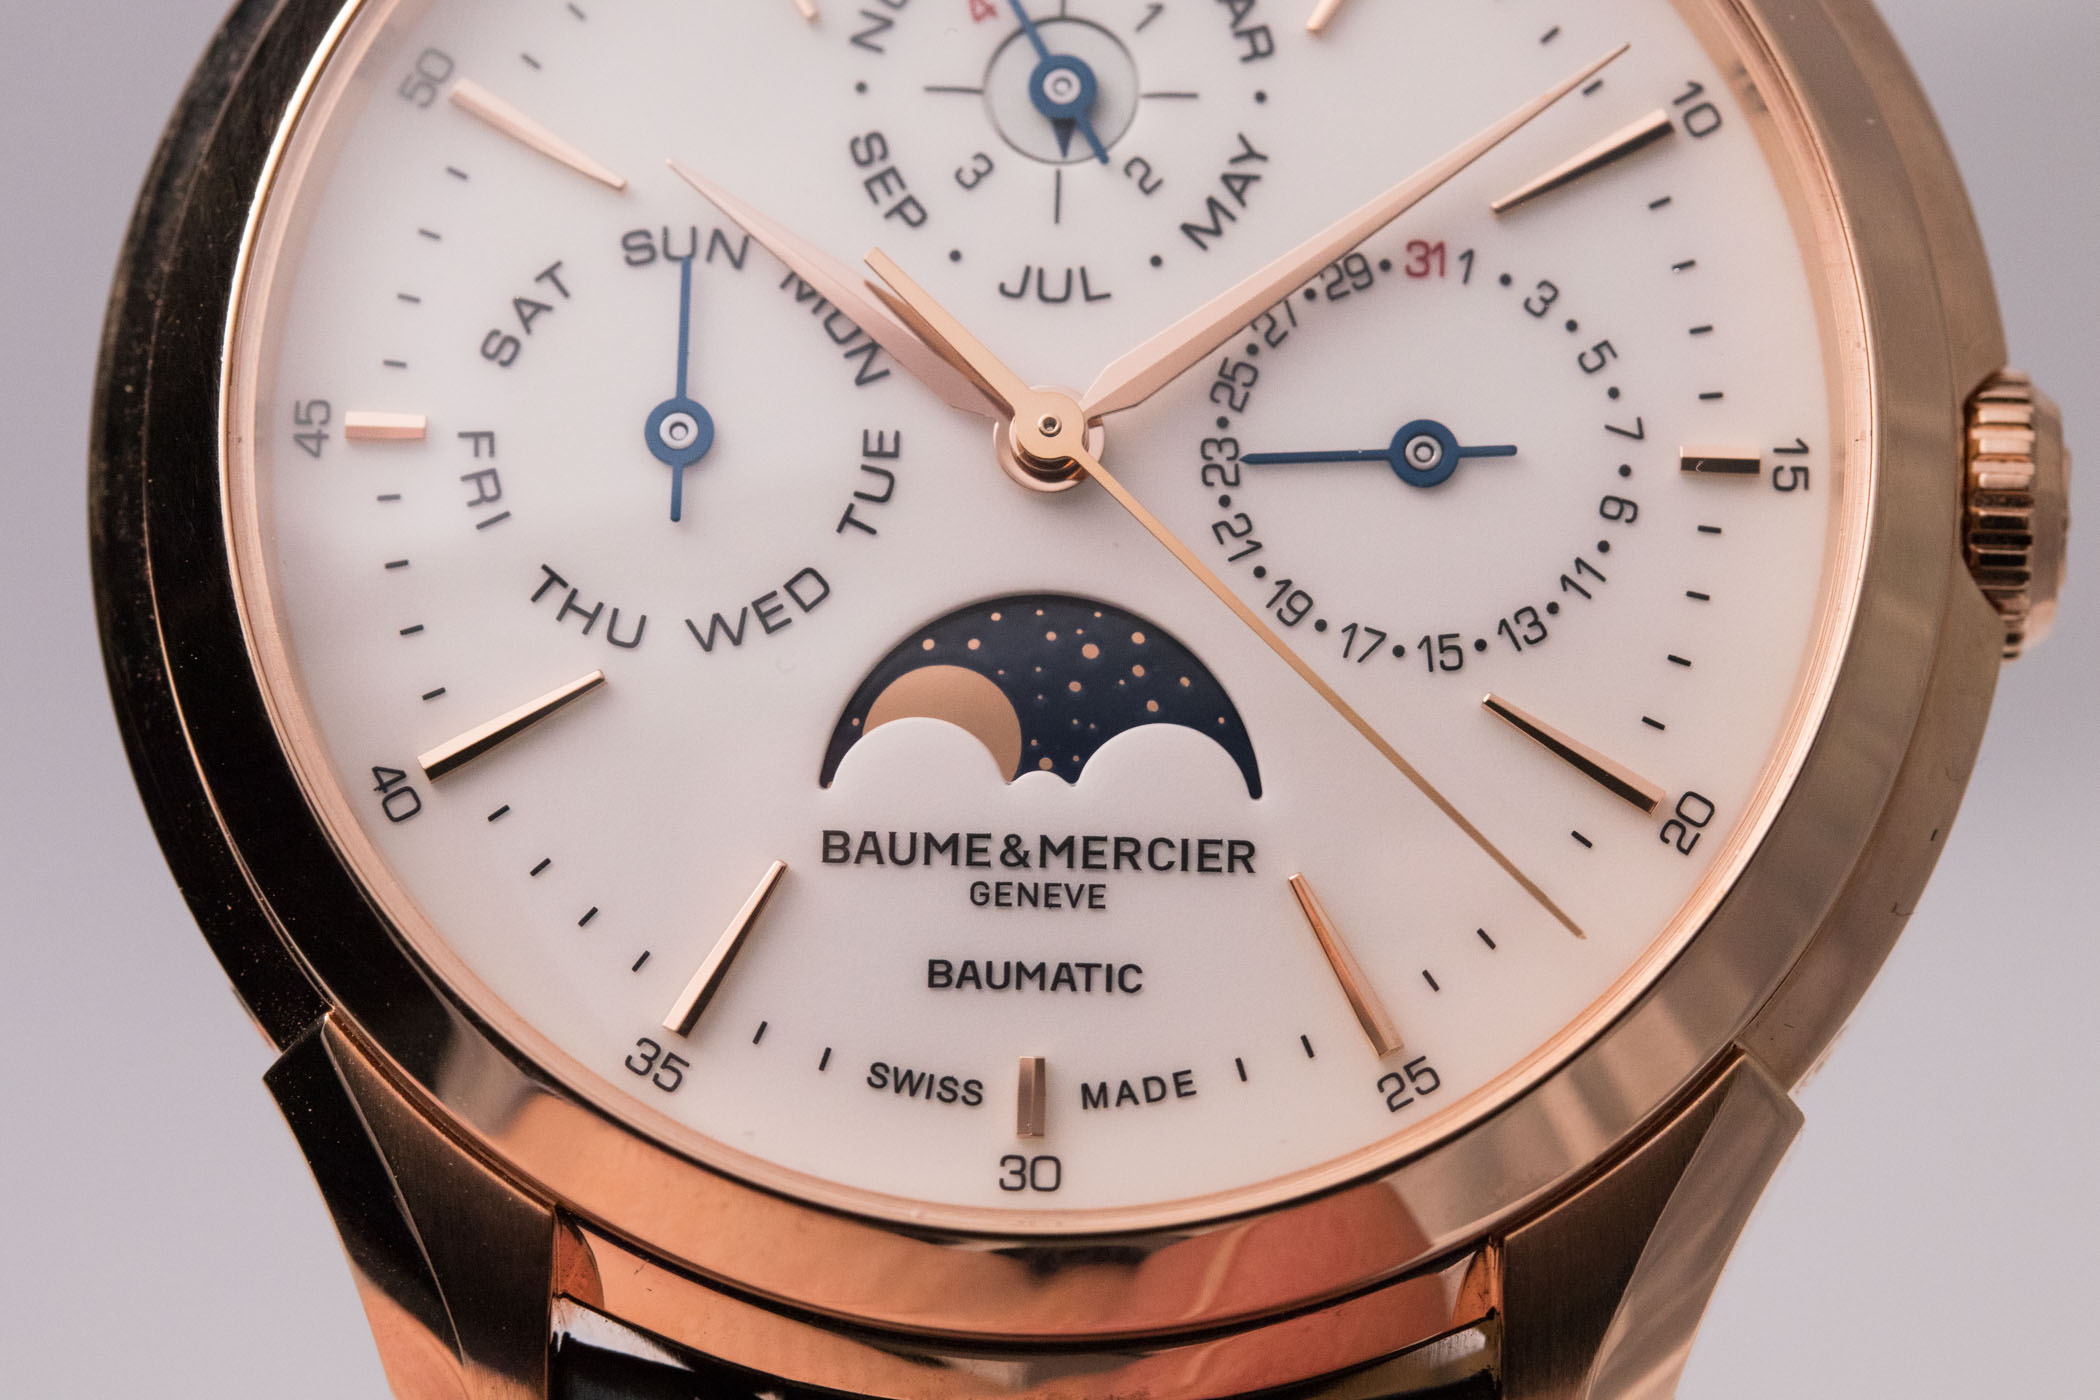 Baume Mercier Clifton Baumatic Perpetual Calendar - Hands-on - 7